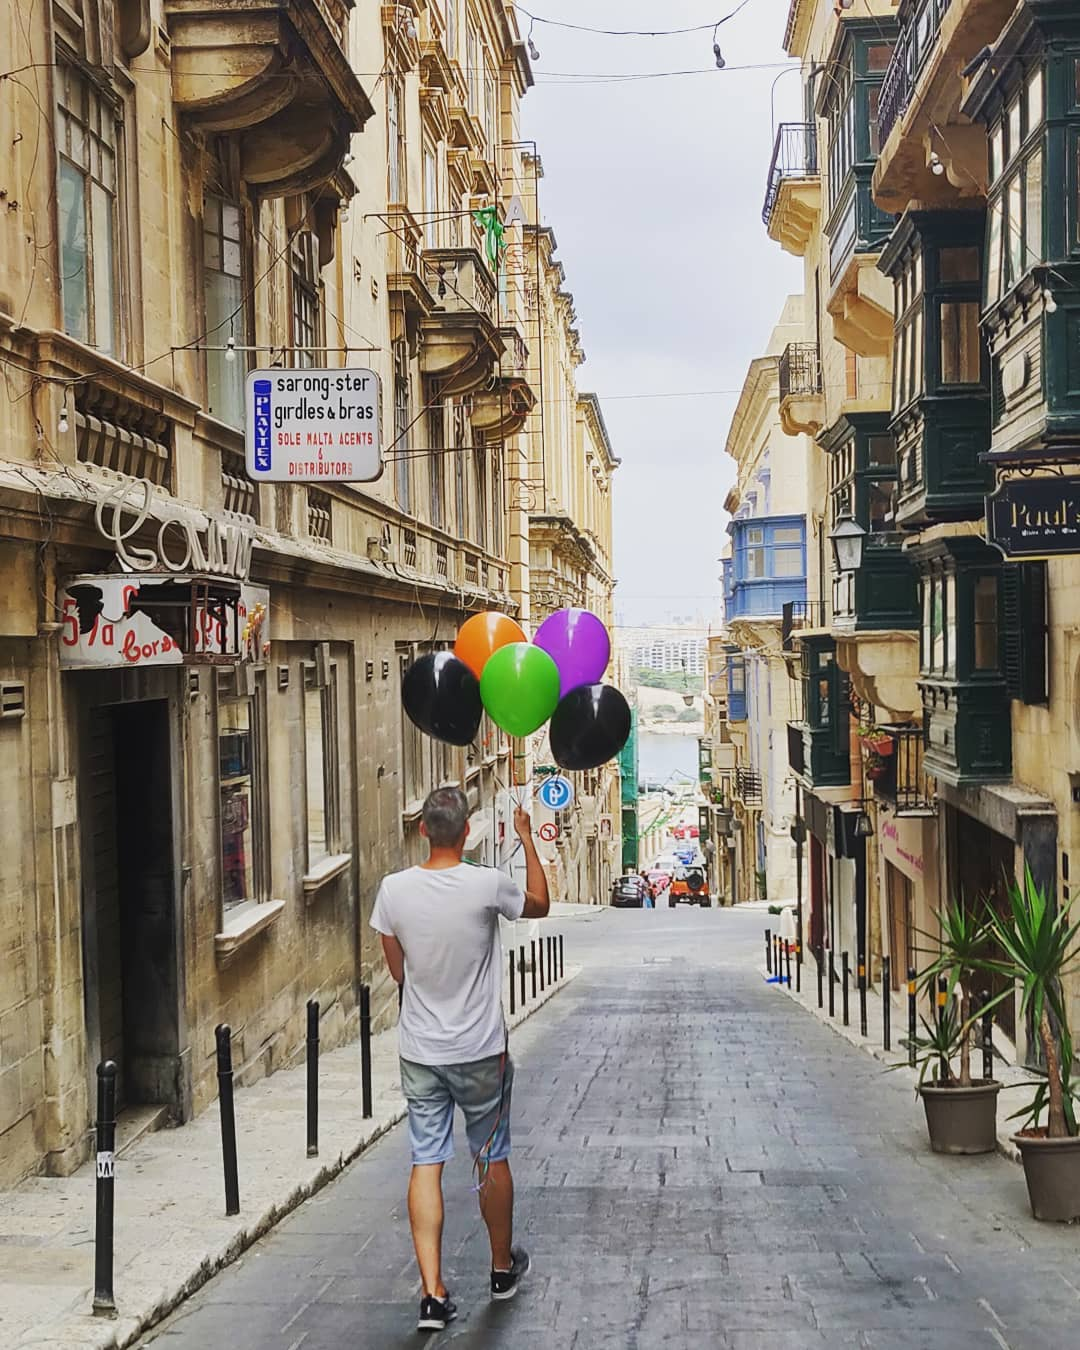 Director Ivan Malekin leads the way in Valletta. Off to our technical rehearsal after collecting our prop balloons early Sunday morning.